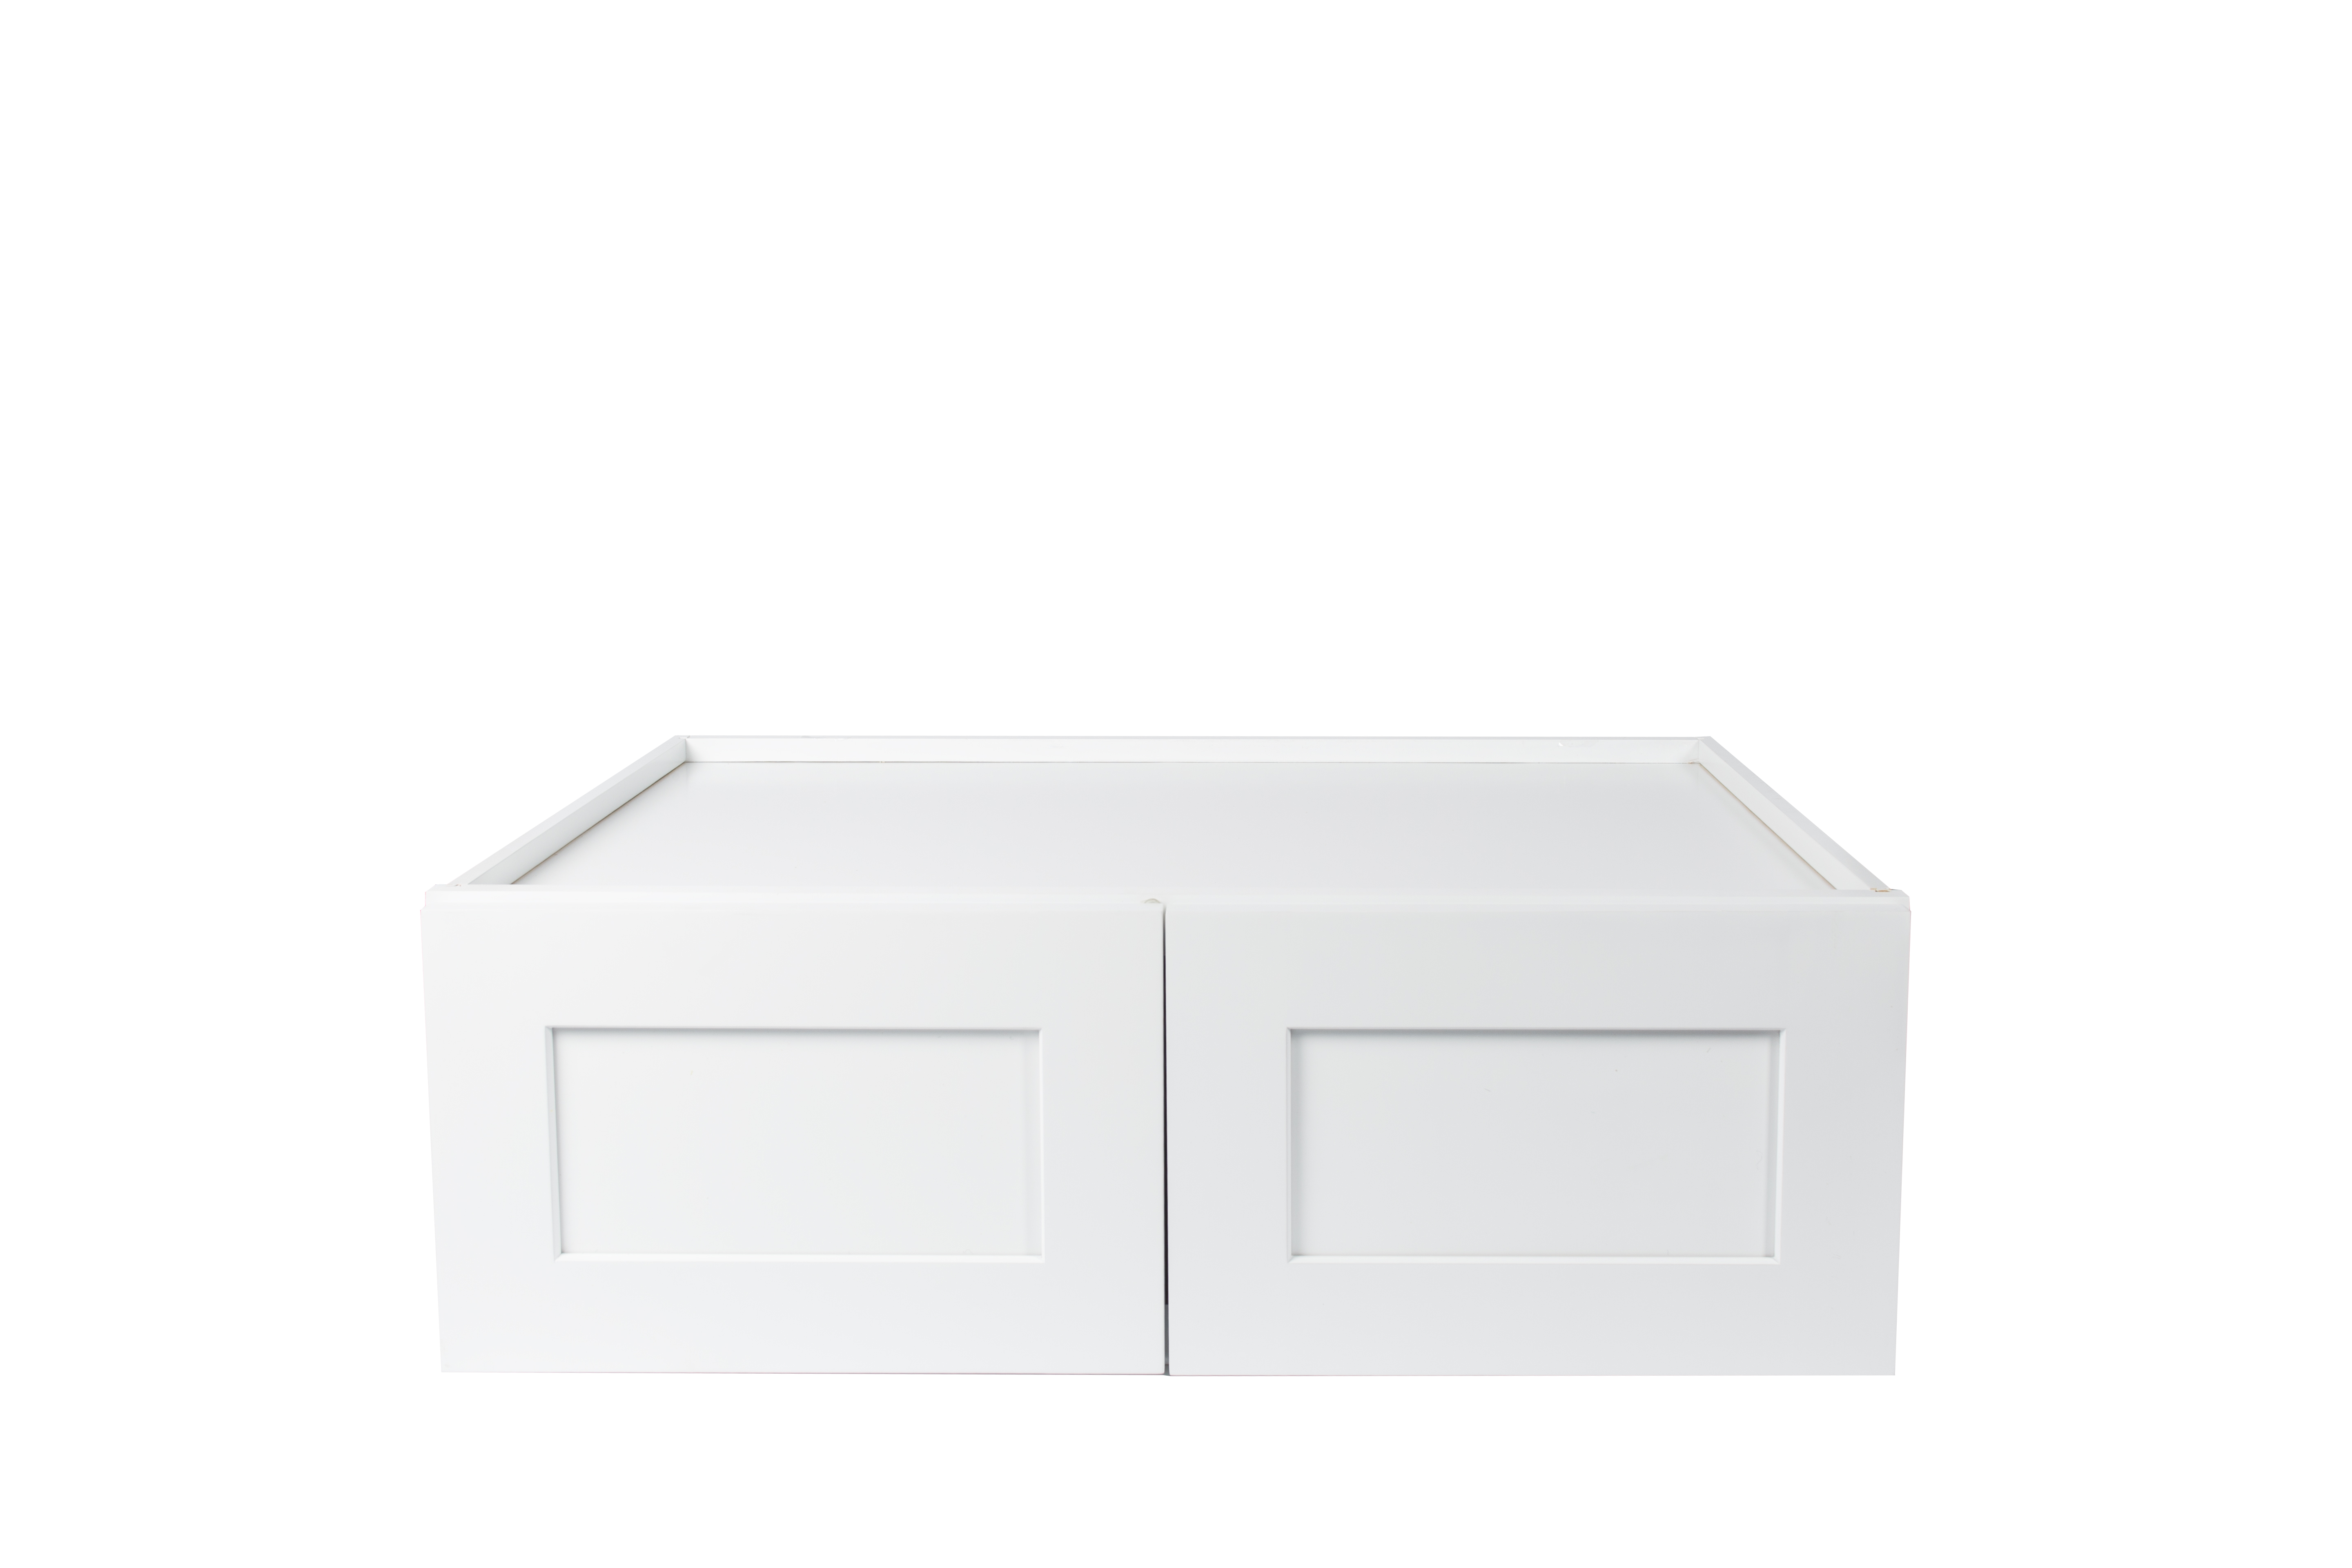 Ready to Assemble 30x21x12 in. Shaker High Double Door Wall Cabinet in White